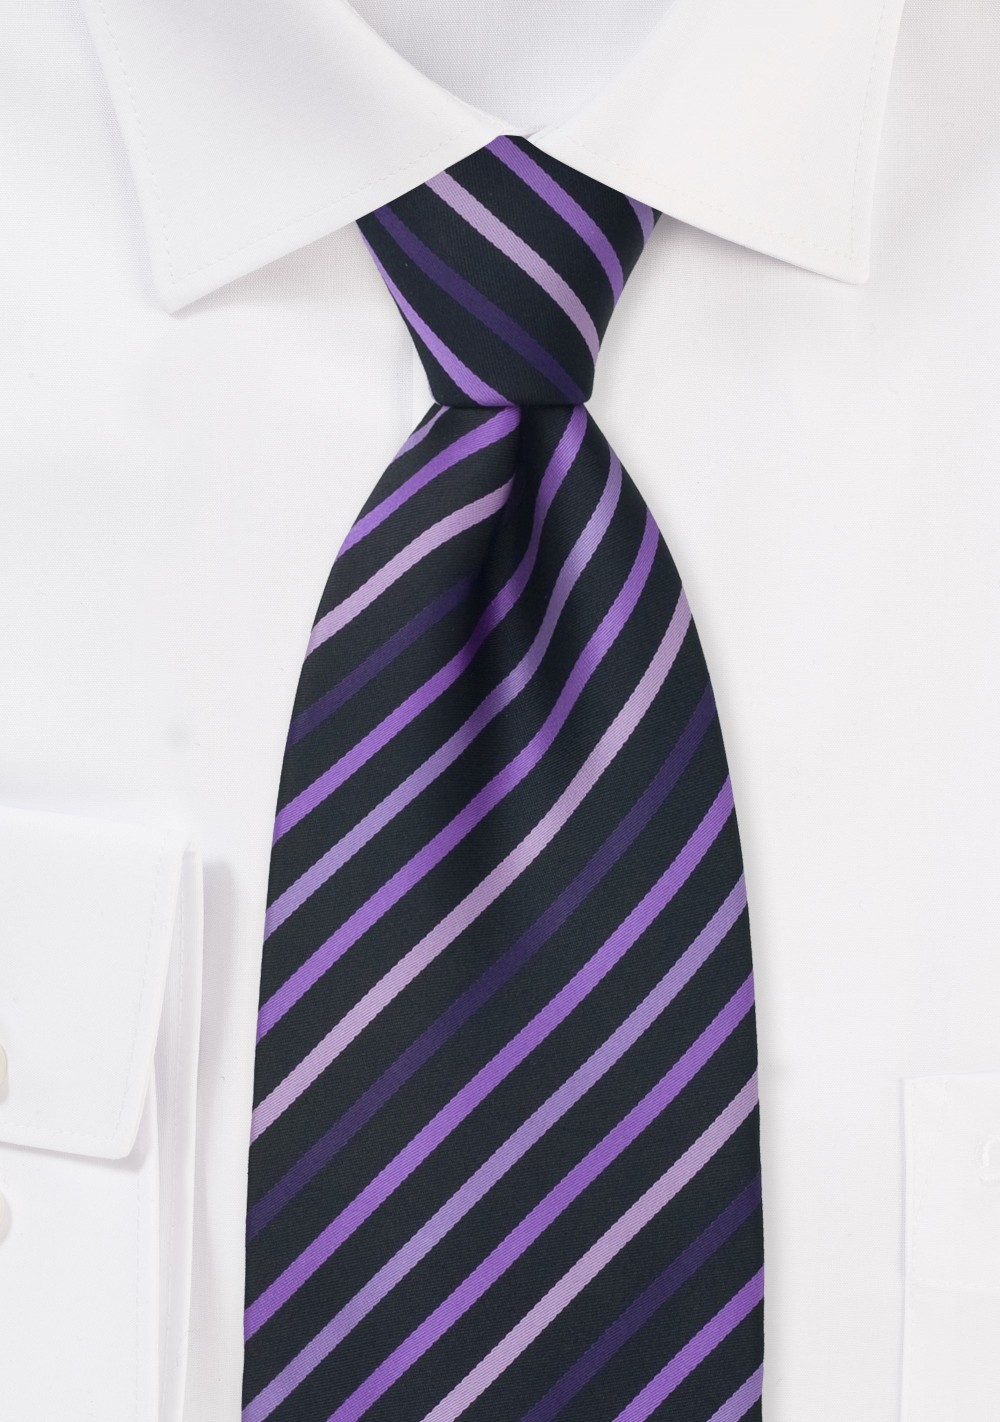 Striped Tie in Pink, Lavender, Purple, and Black